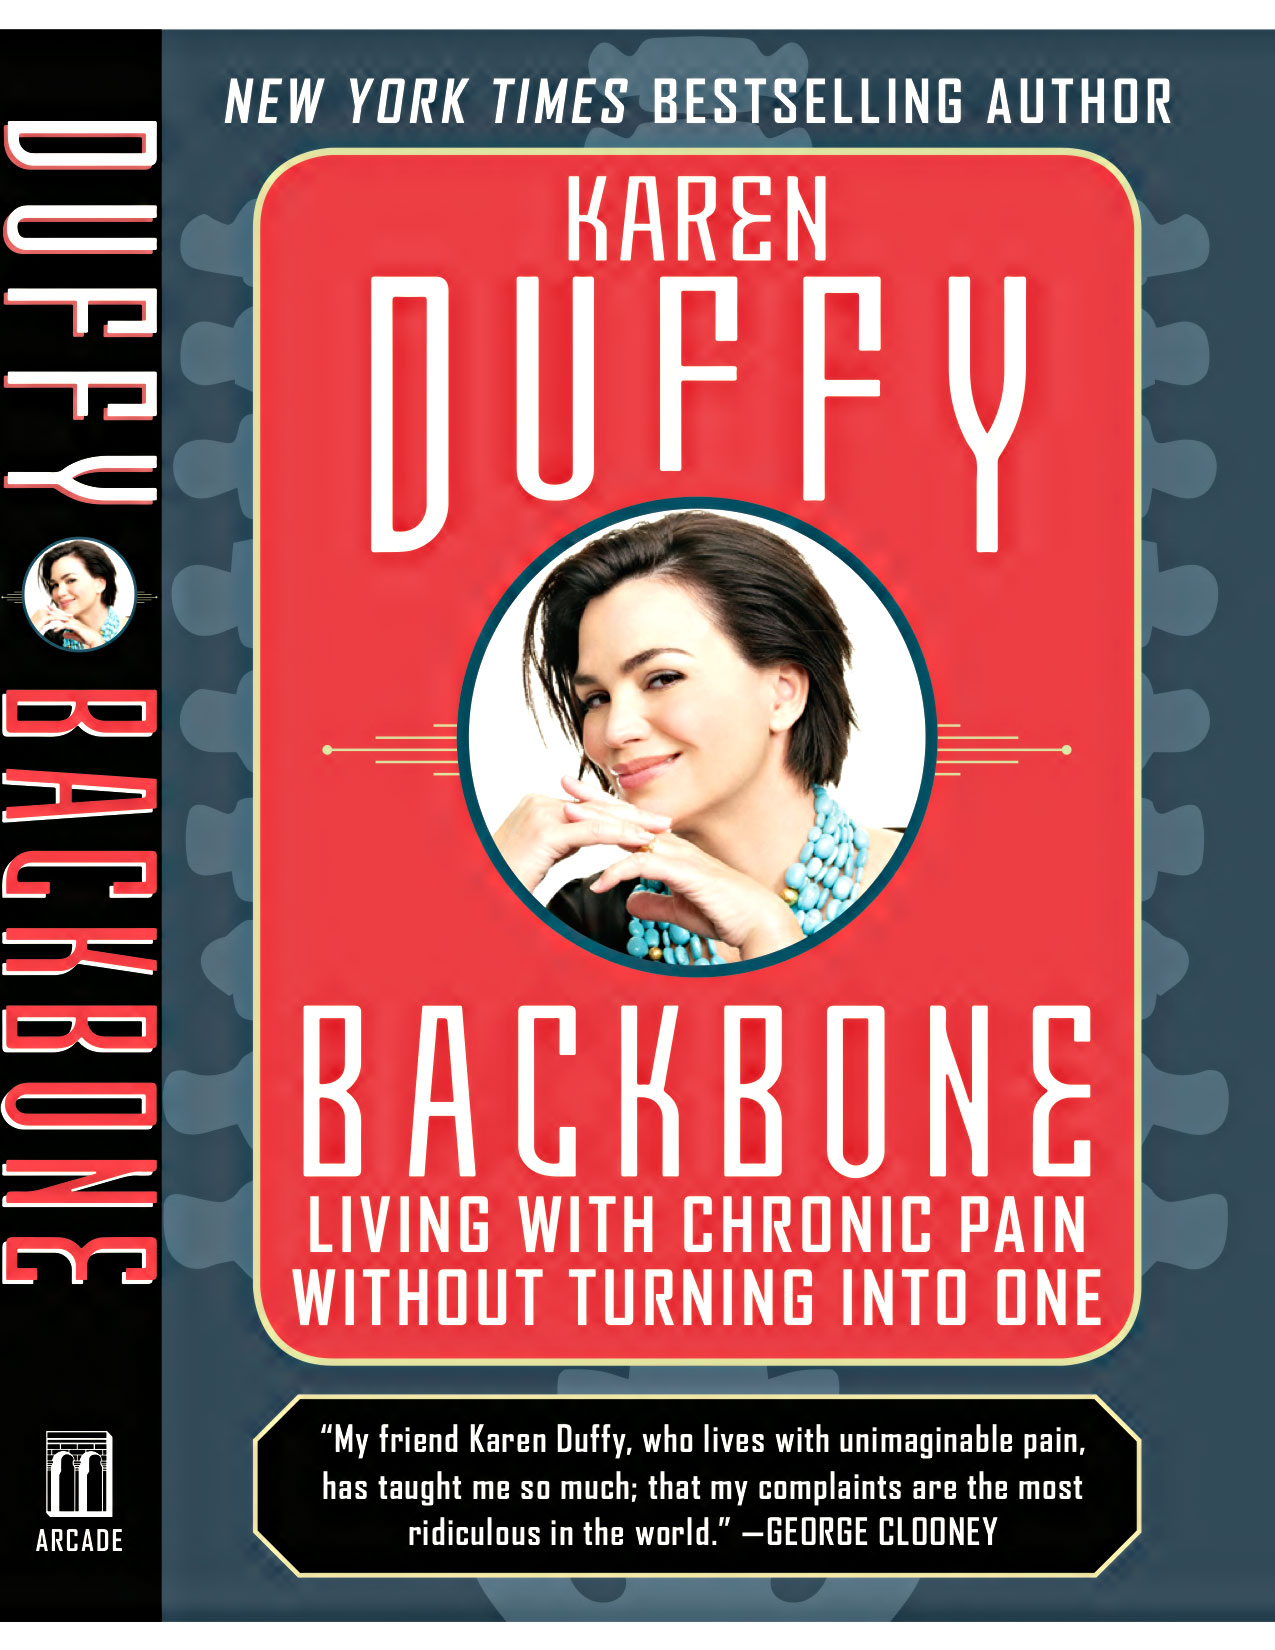 Ridgely Brode chats with Karen Duffy, Author of Backbone: Living with Chronic Pain without Turning into One, on her blog Ridgely's Radar